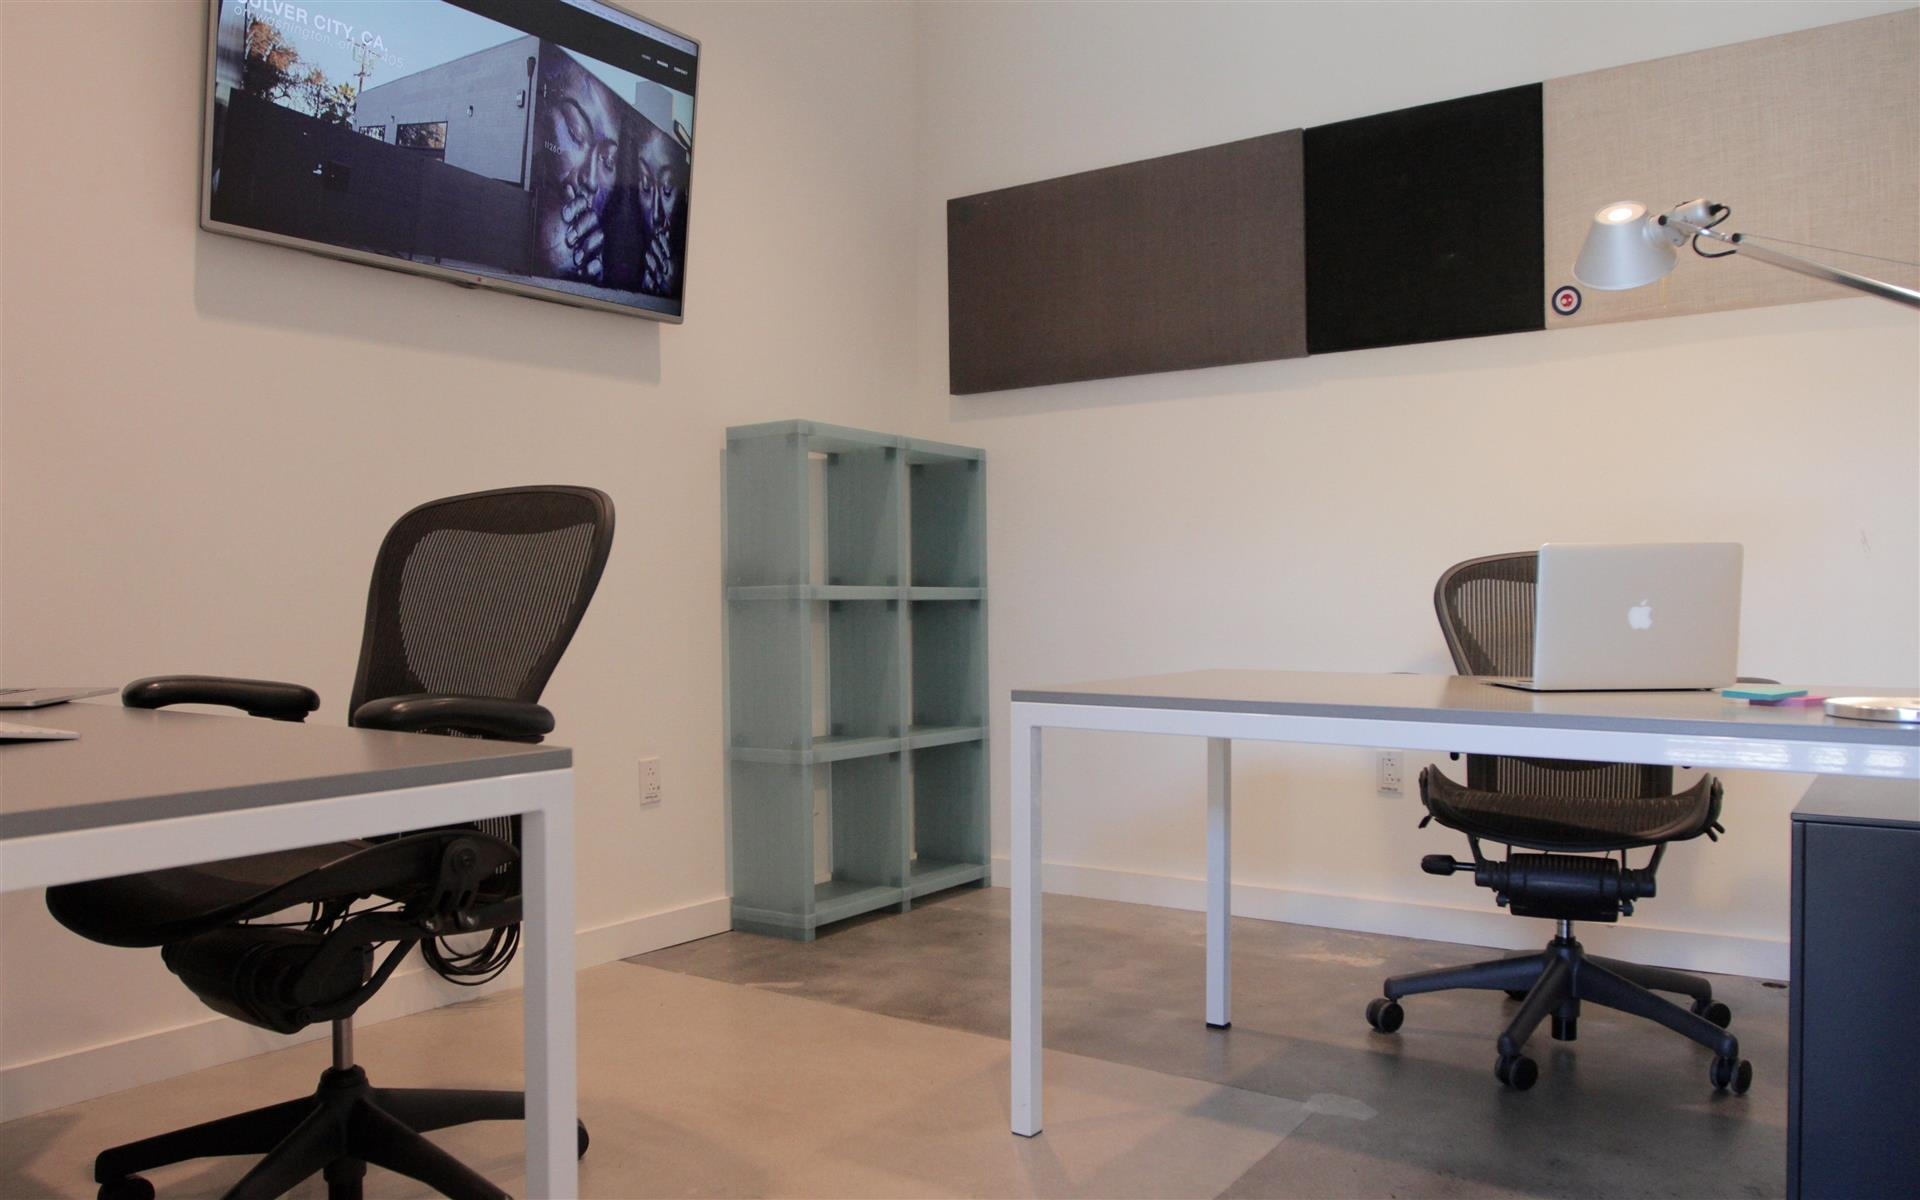 3RBLab - office 4 - 2 to 3 people private office